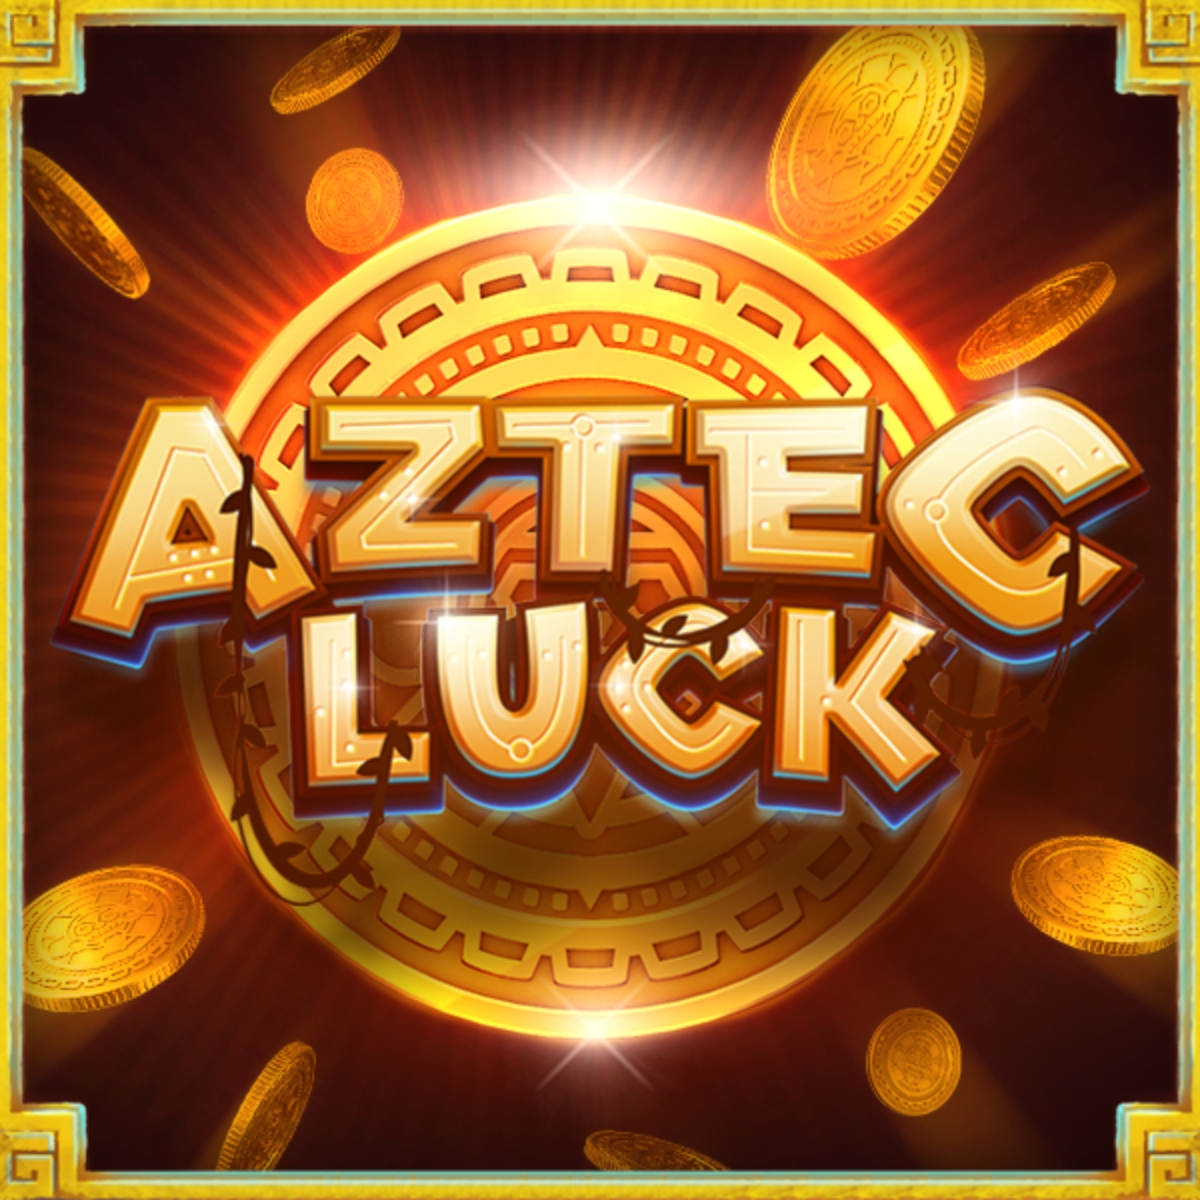 The Aztec Luck Online Slot Demo Game by Silverback Gaming